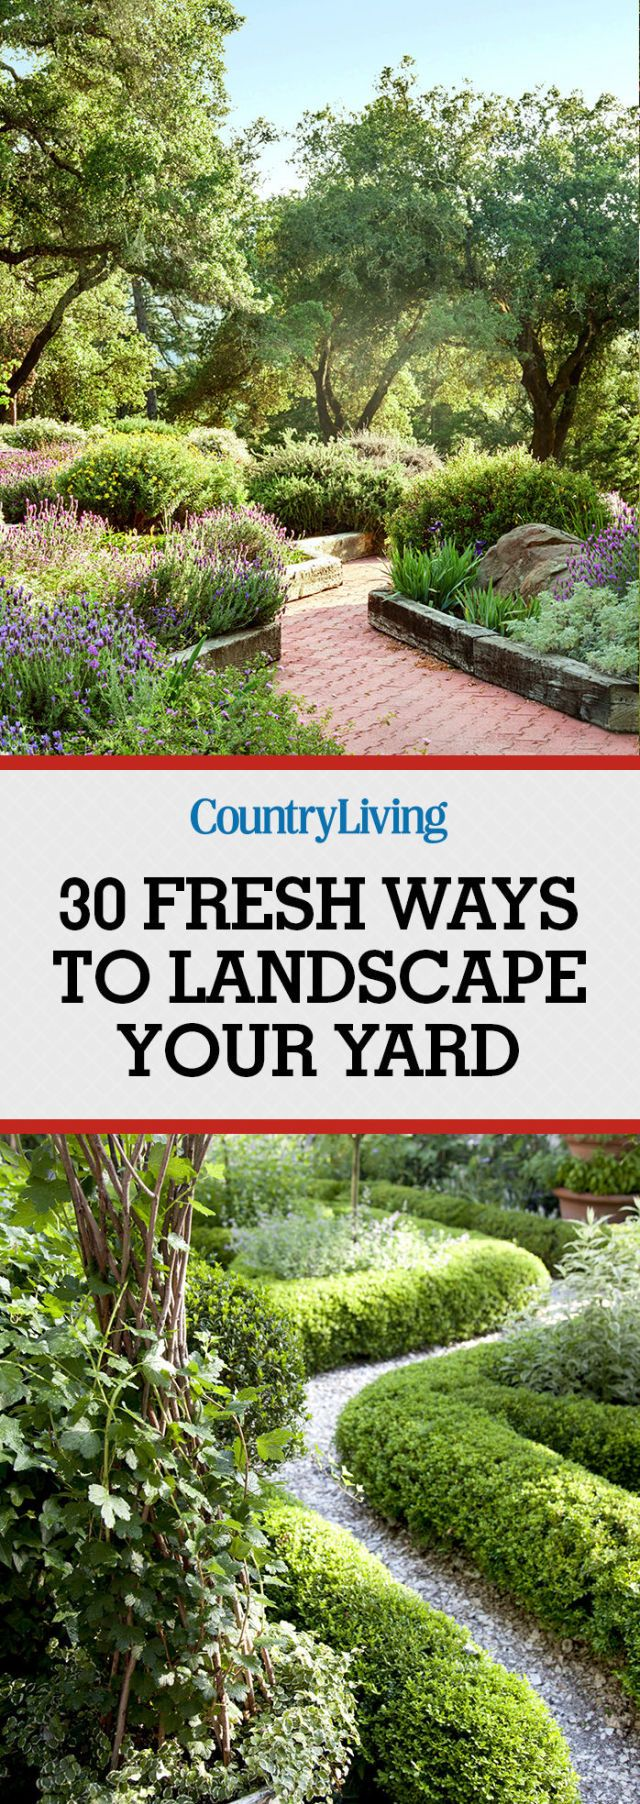 Get inspired! Update your front yard or backyard design with shrubbery, gardens, walkways, and more.